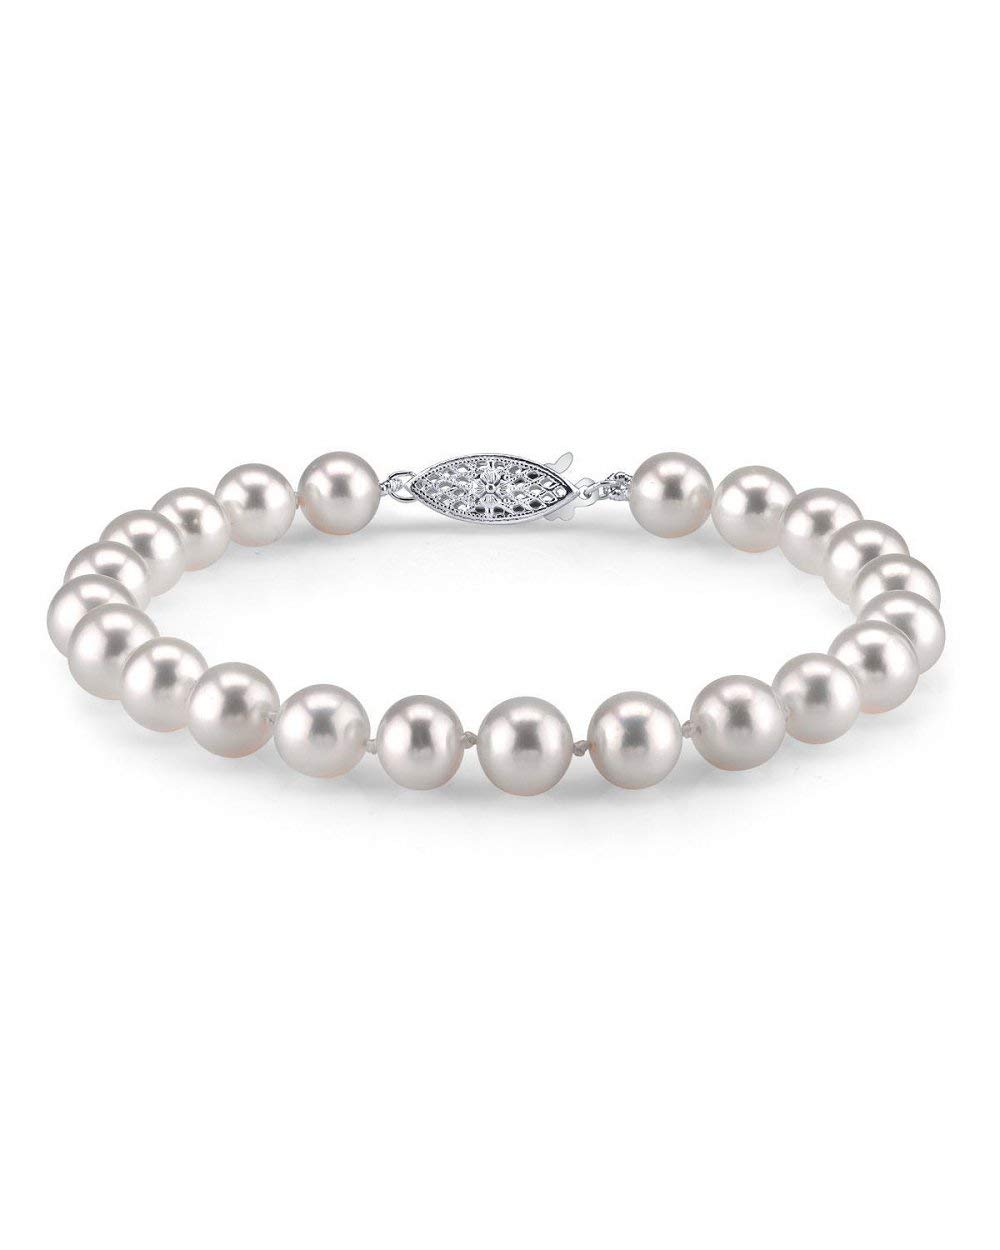 THE PEARL SOURCE 14K Gold 7-7.5mm Round White Japanese Akoya Saltwater Cultured Pearl Bracelet for Women by The Pearl Source